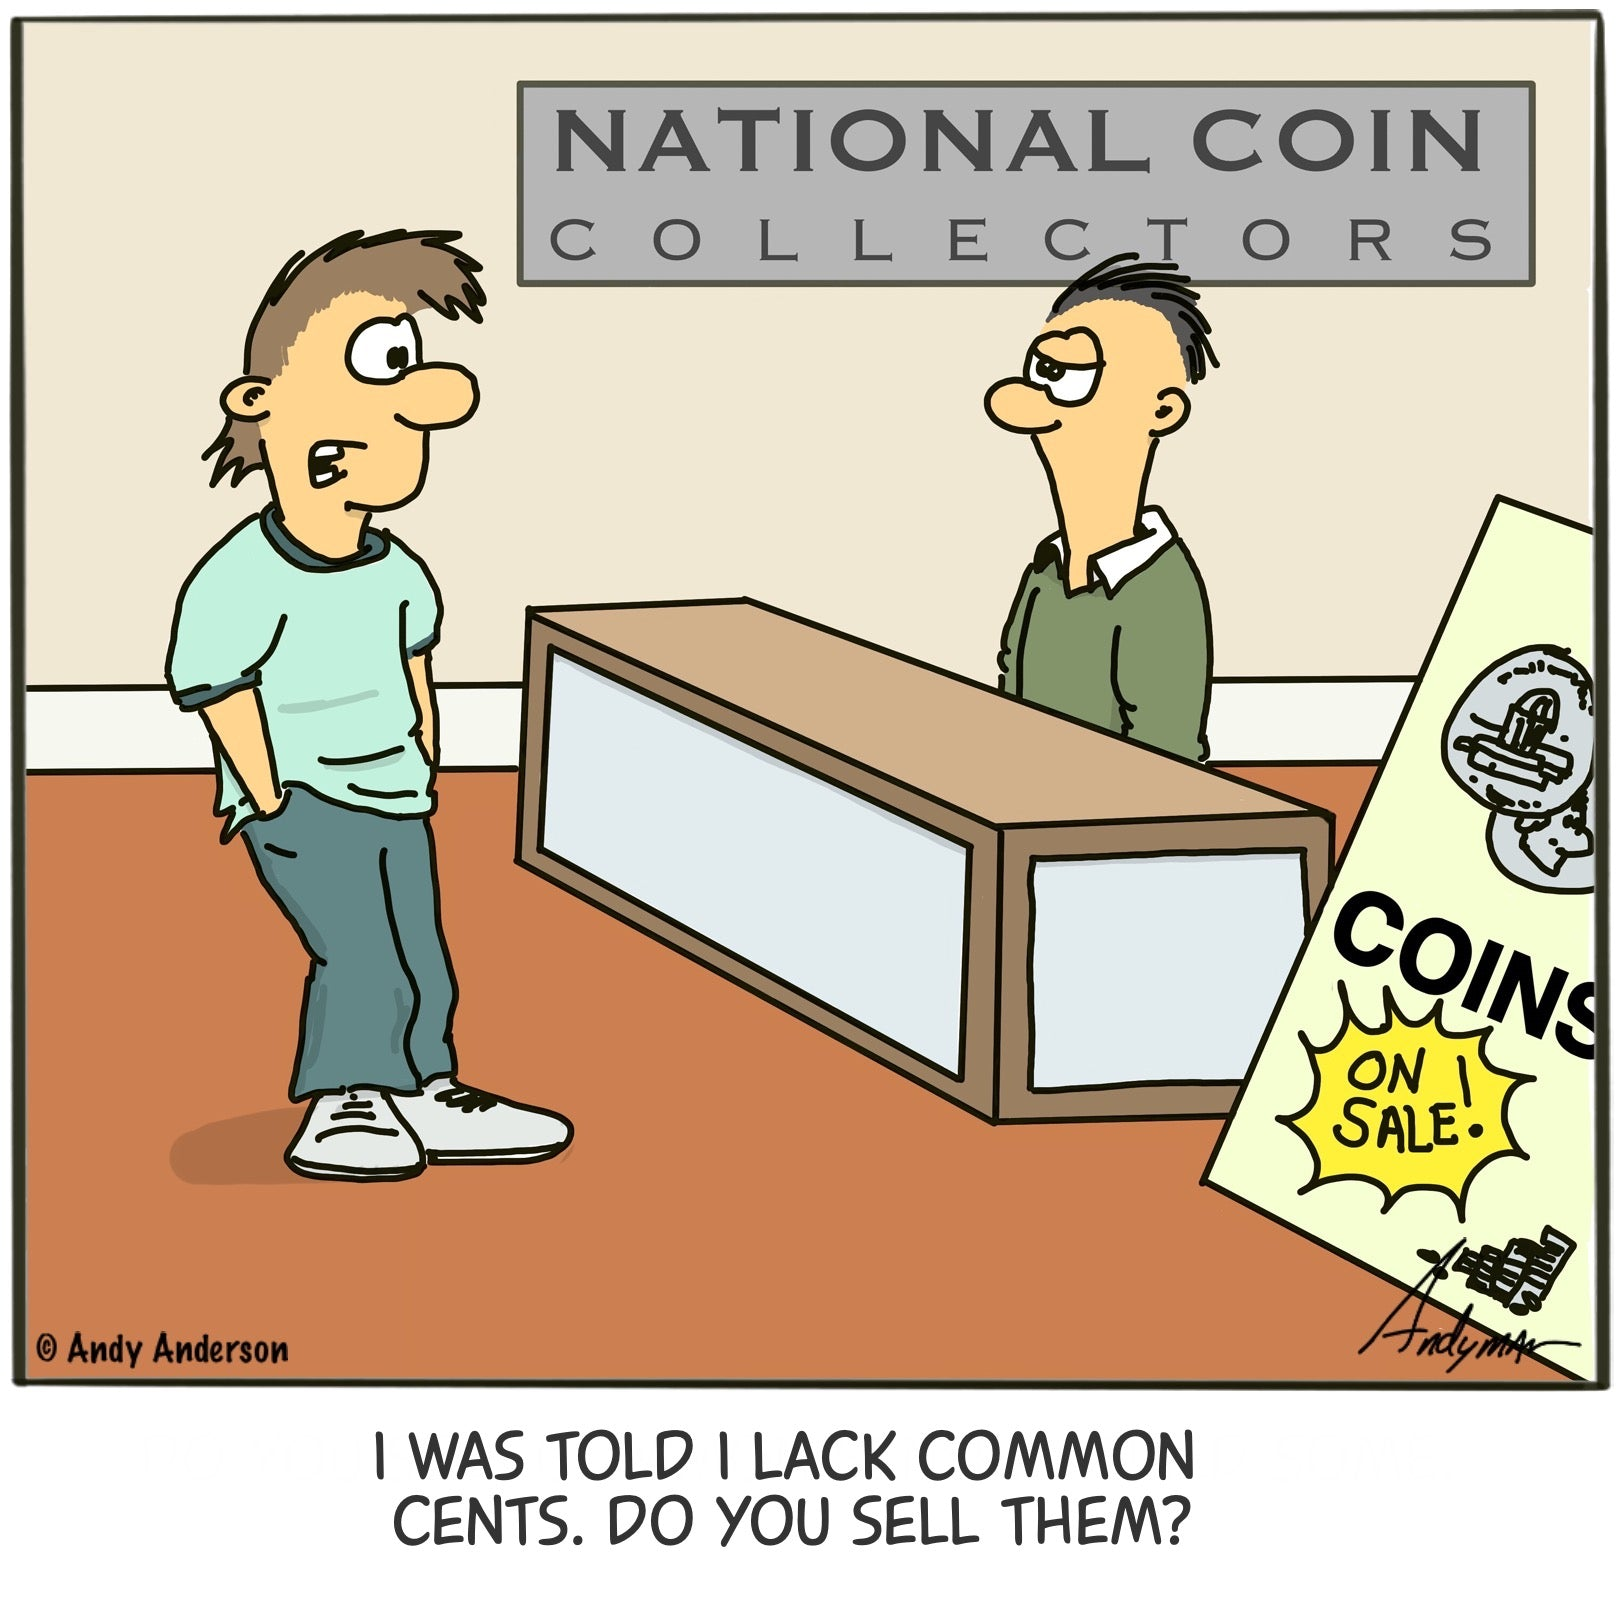 Cartoon about a man at a coin collector looking for common sense (cents)